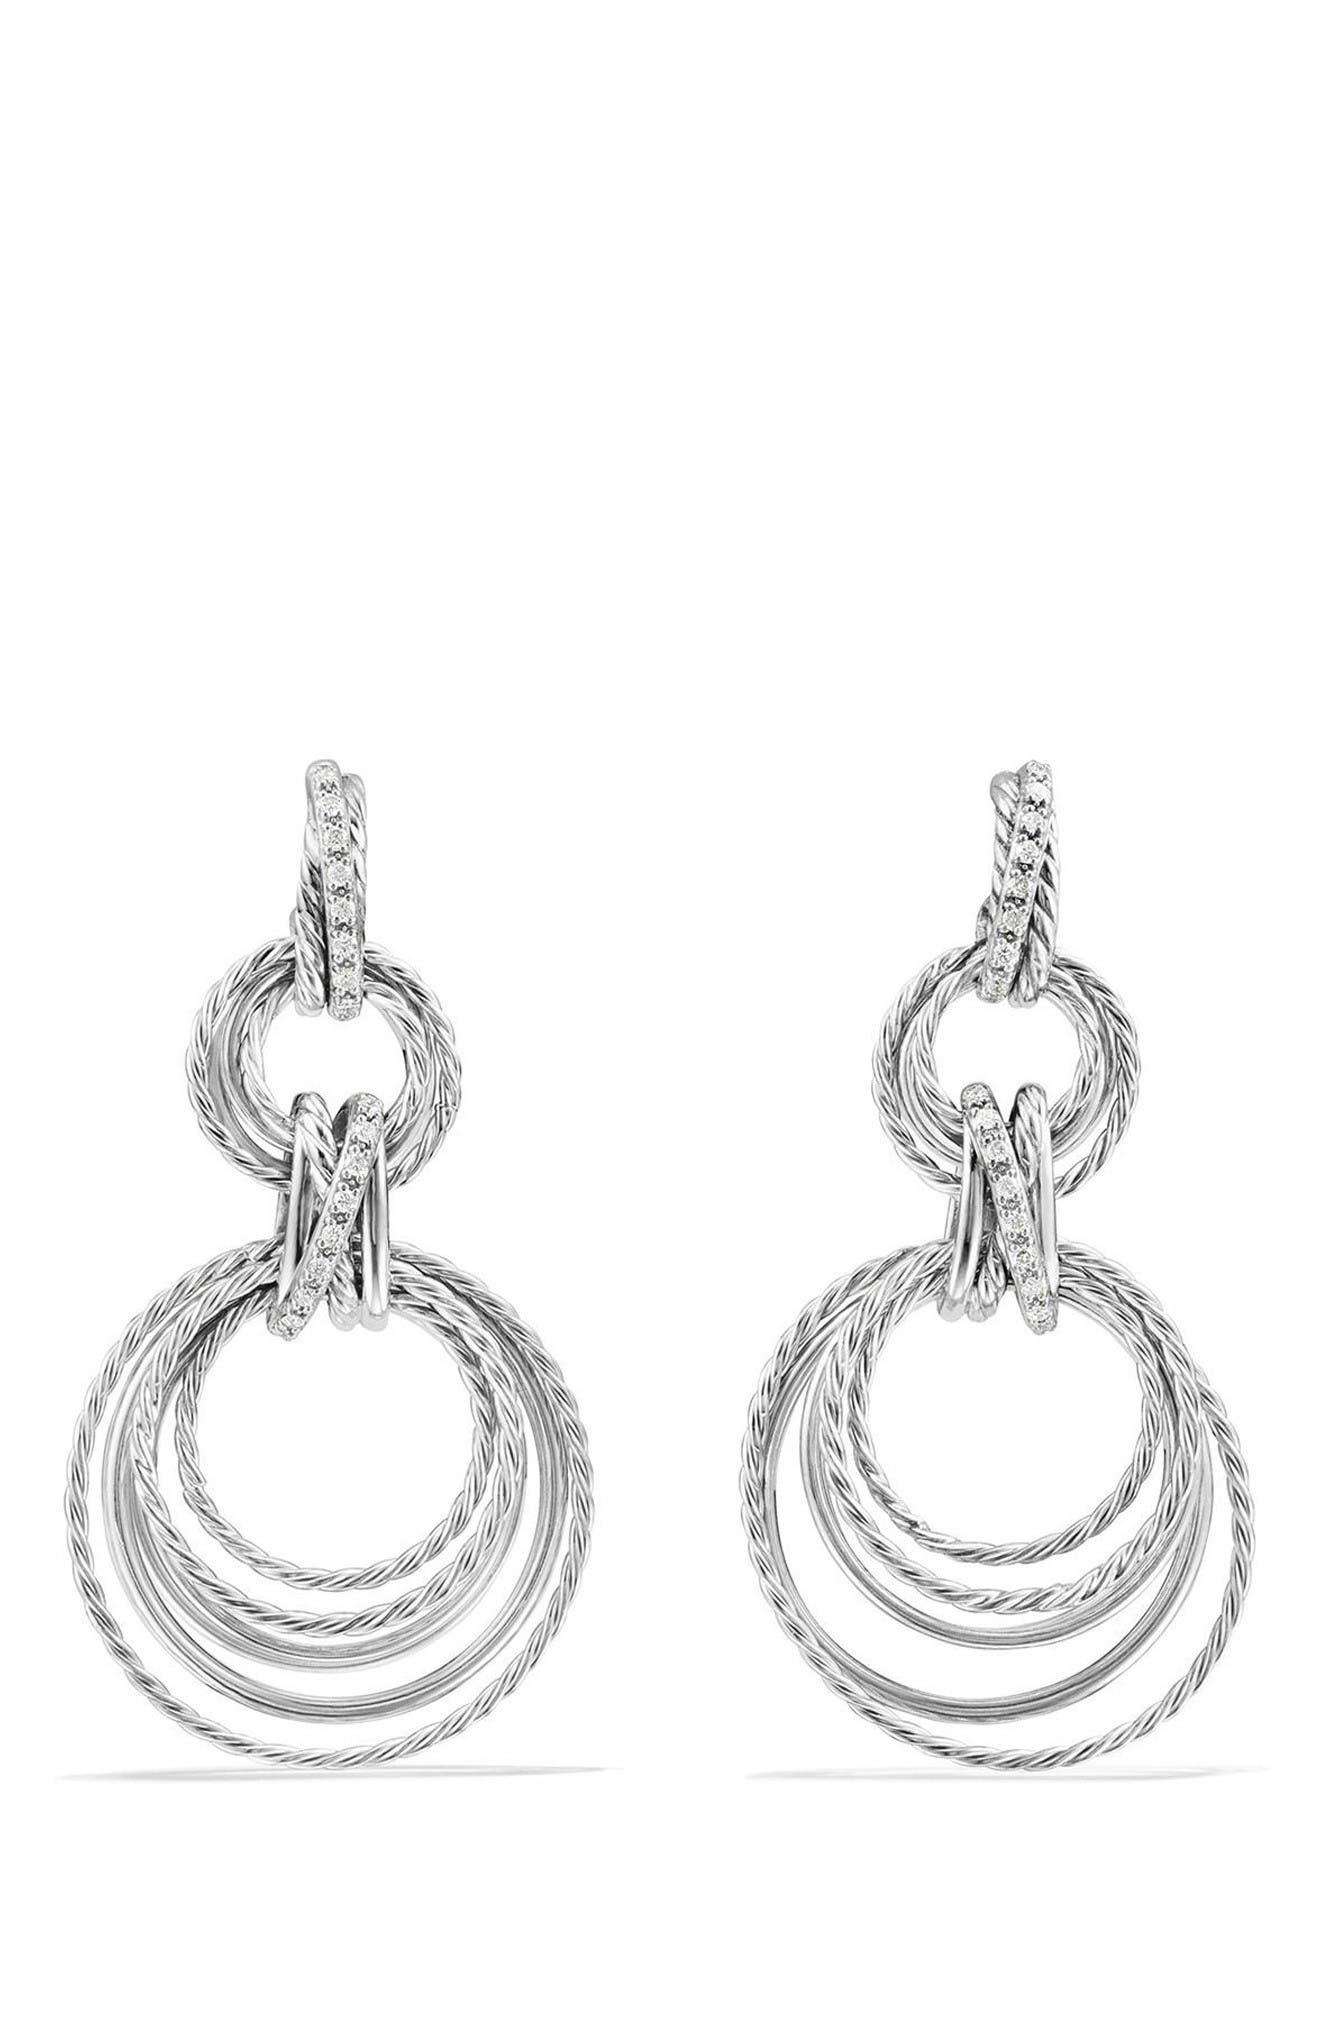 Crossover Double Drop Earrings with Diamonds,                         Main,                         color, Silver